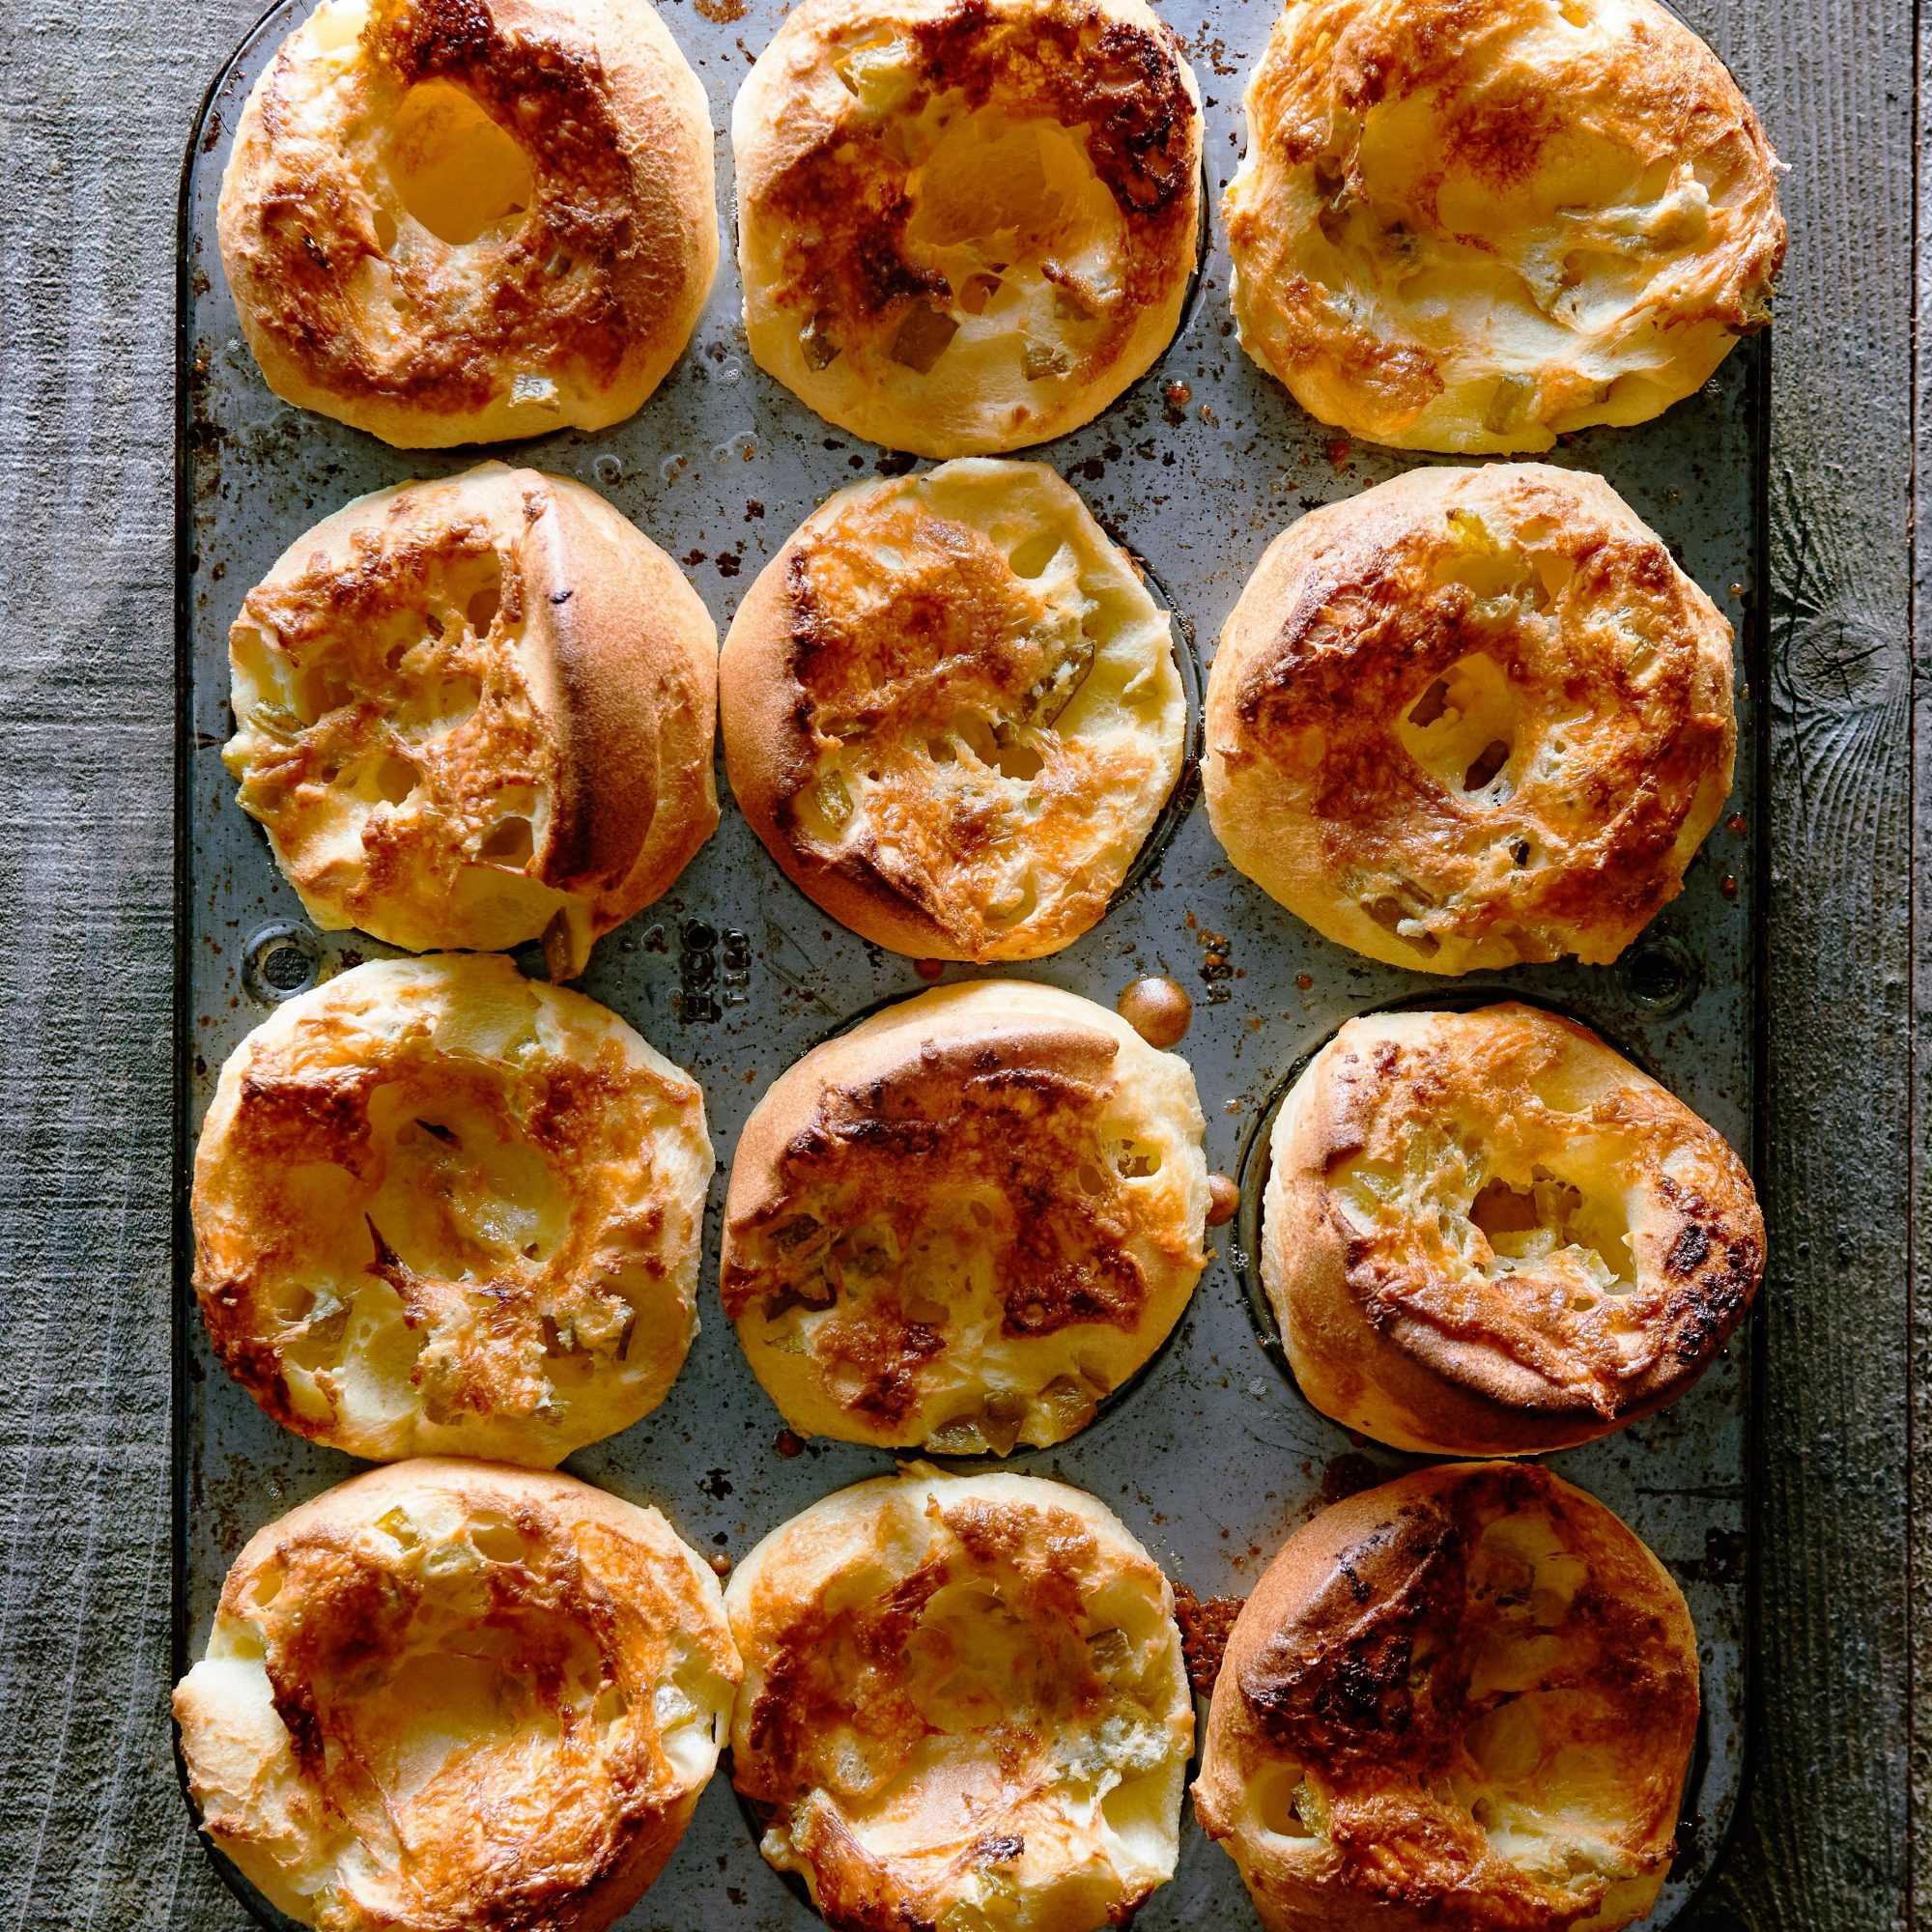 Chile Cheese Baby Dutch Babies